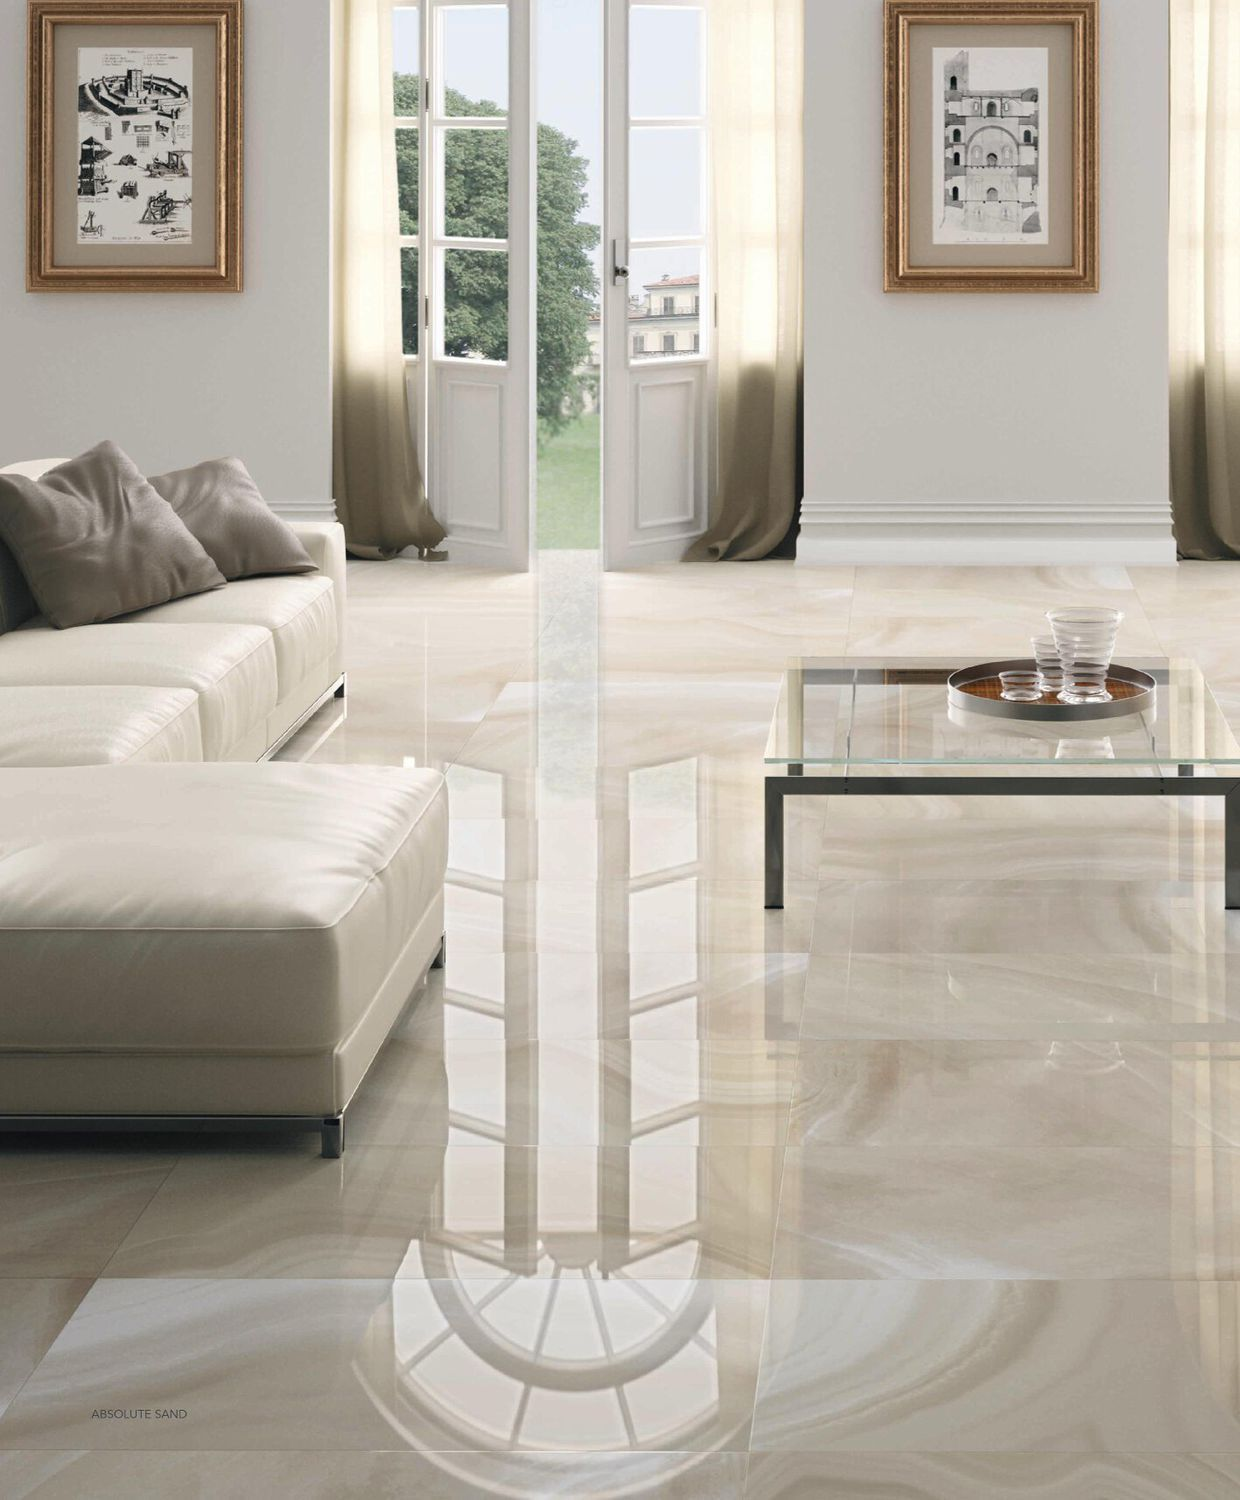 Floor tile / porcelain stoneware / highgloss / stone look